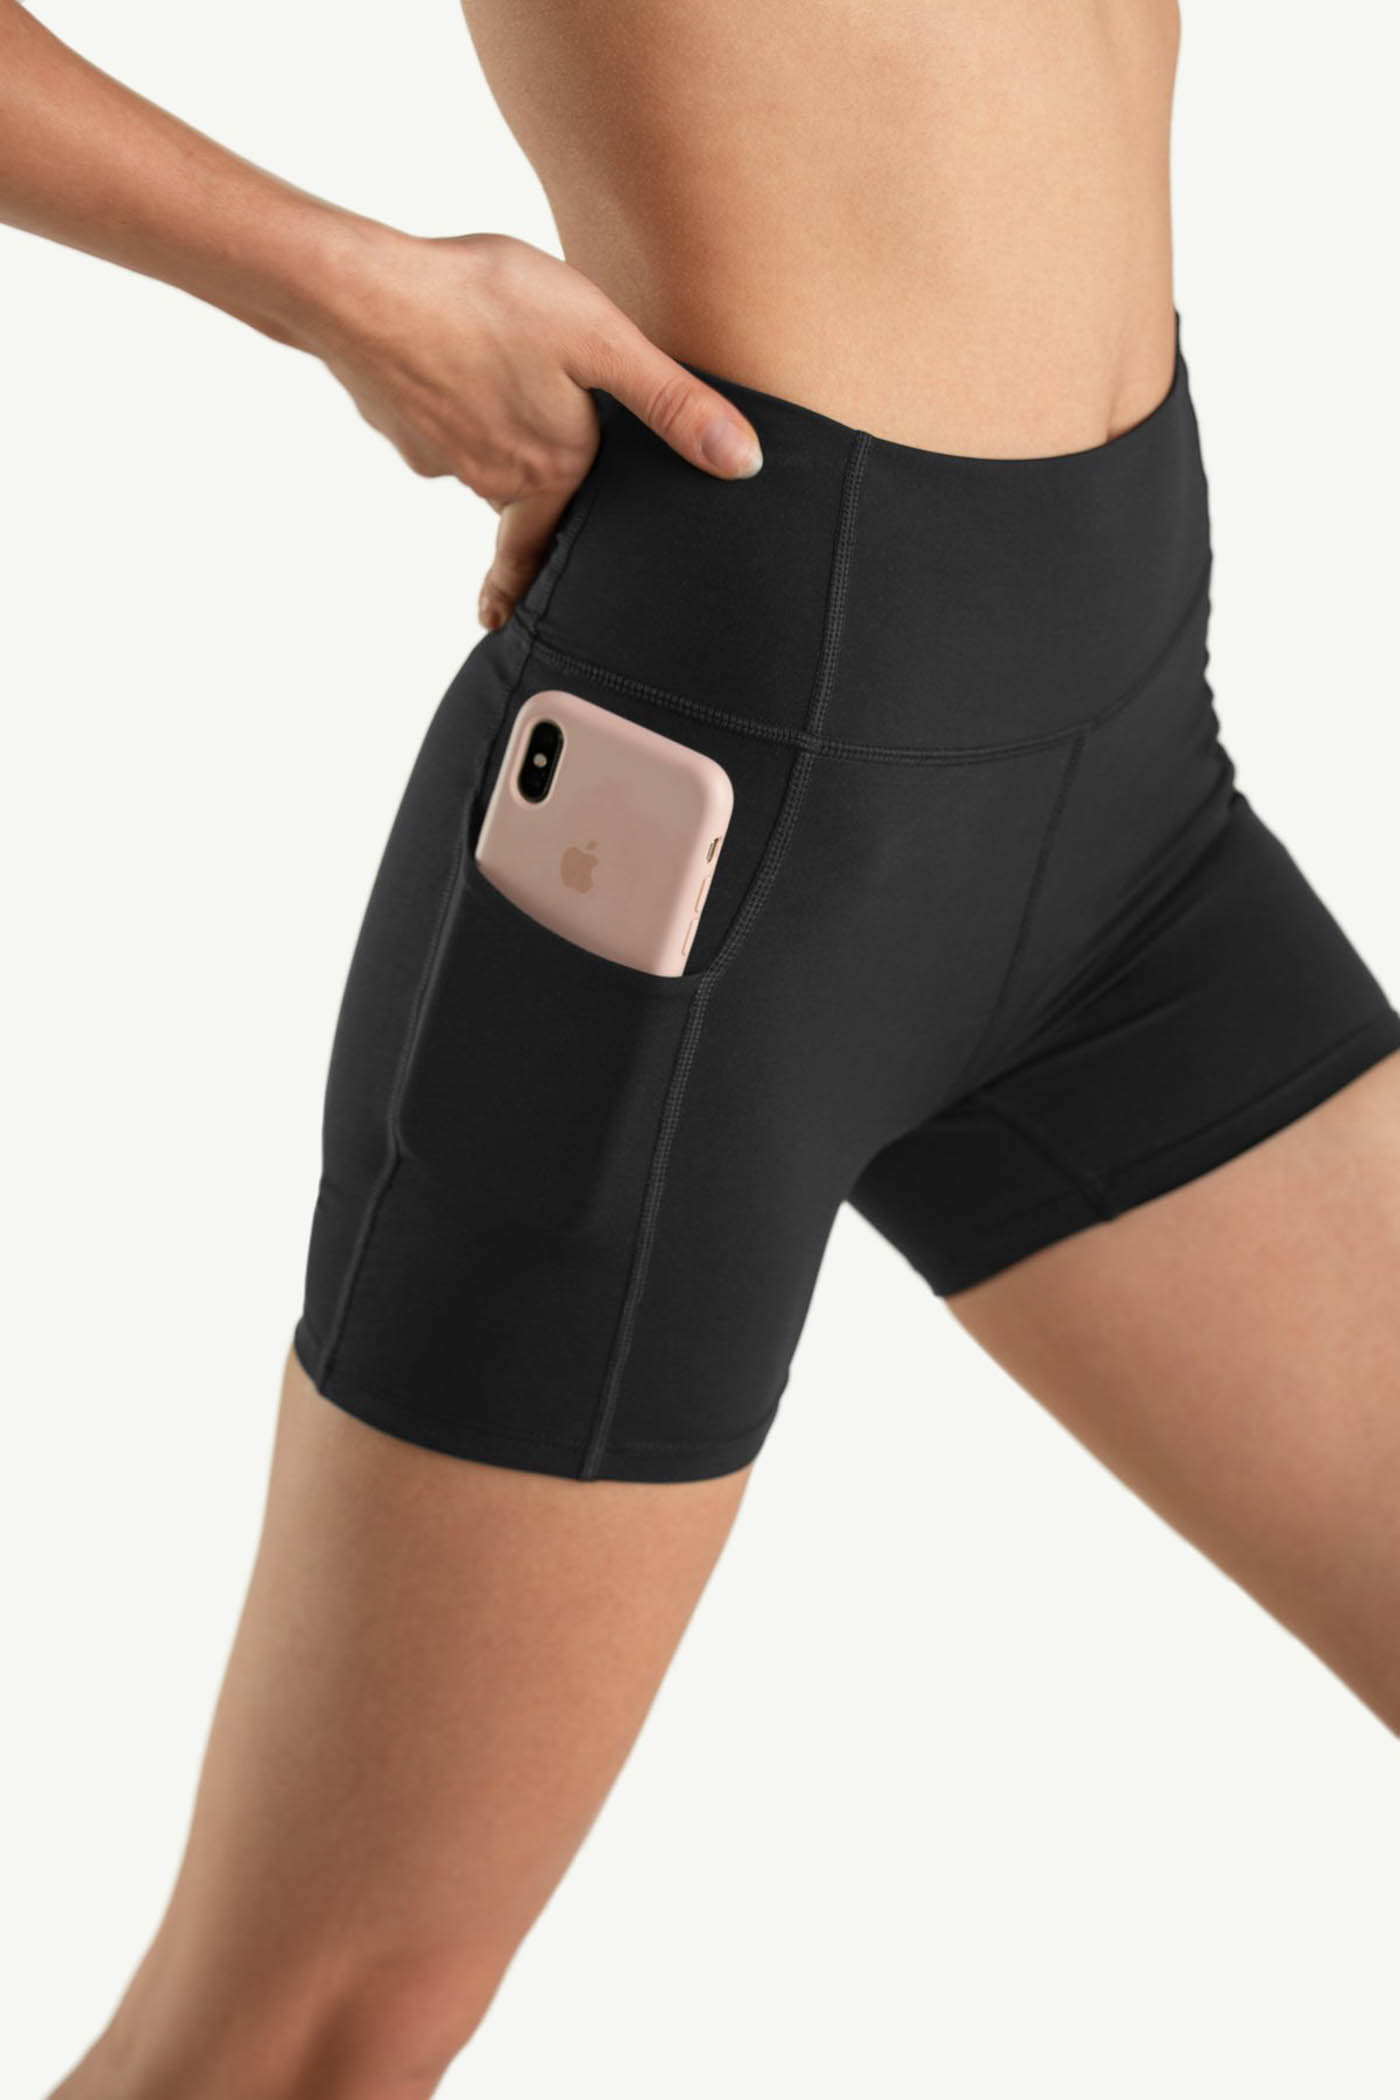 Kydra Kyro Pocket Shorts